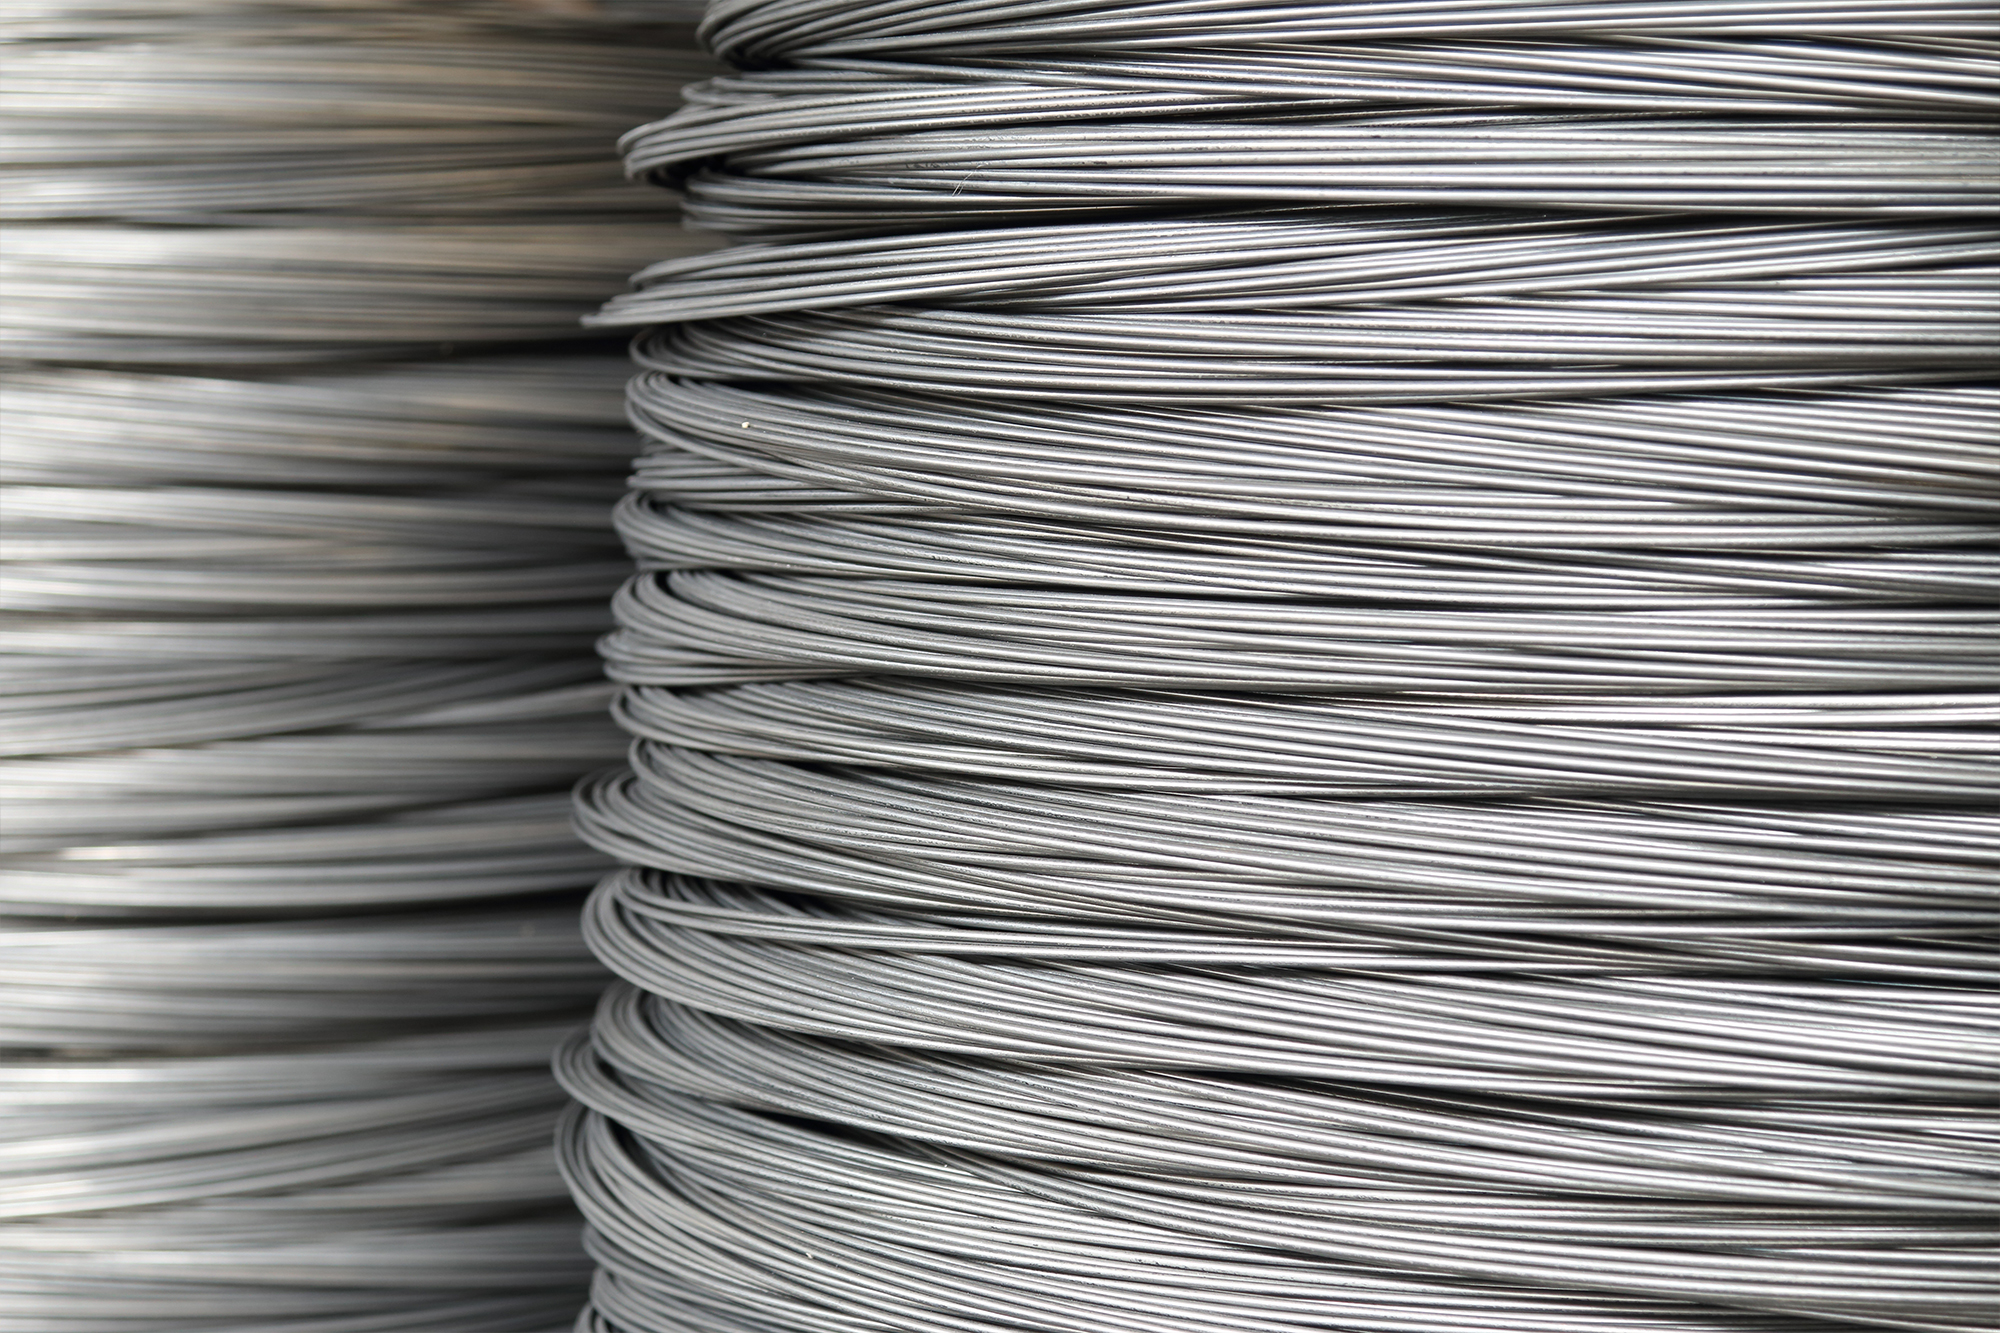 Spools of thin aluminum wire